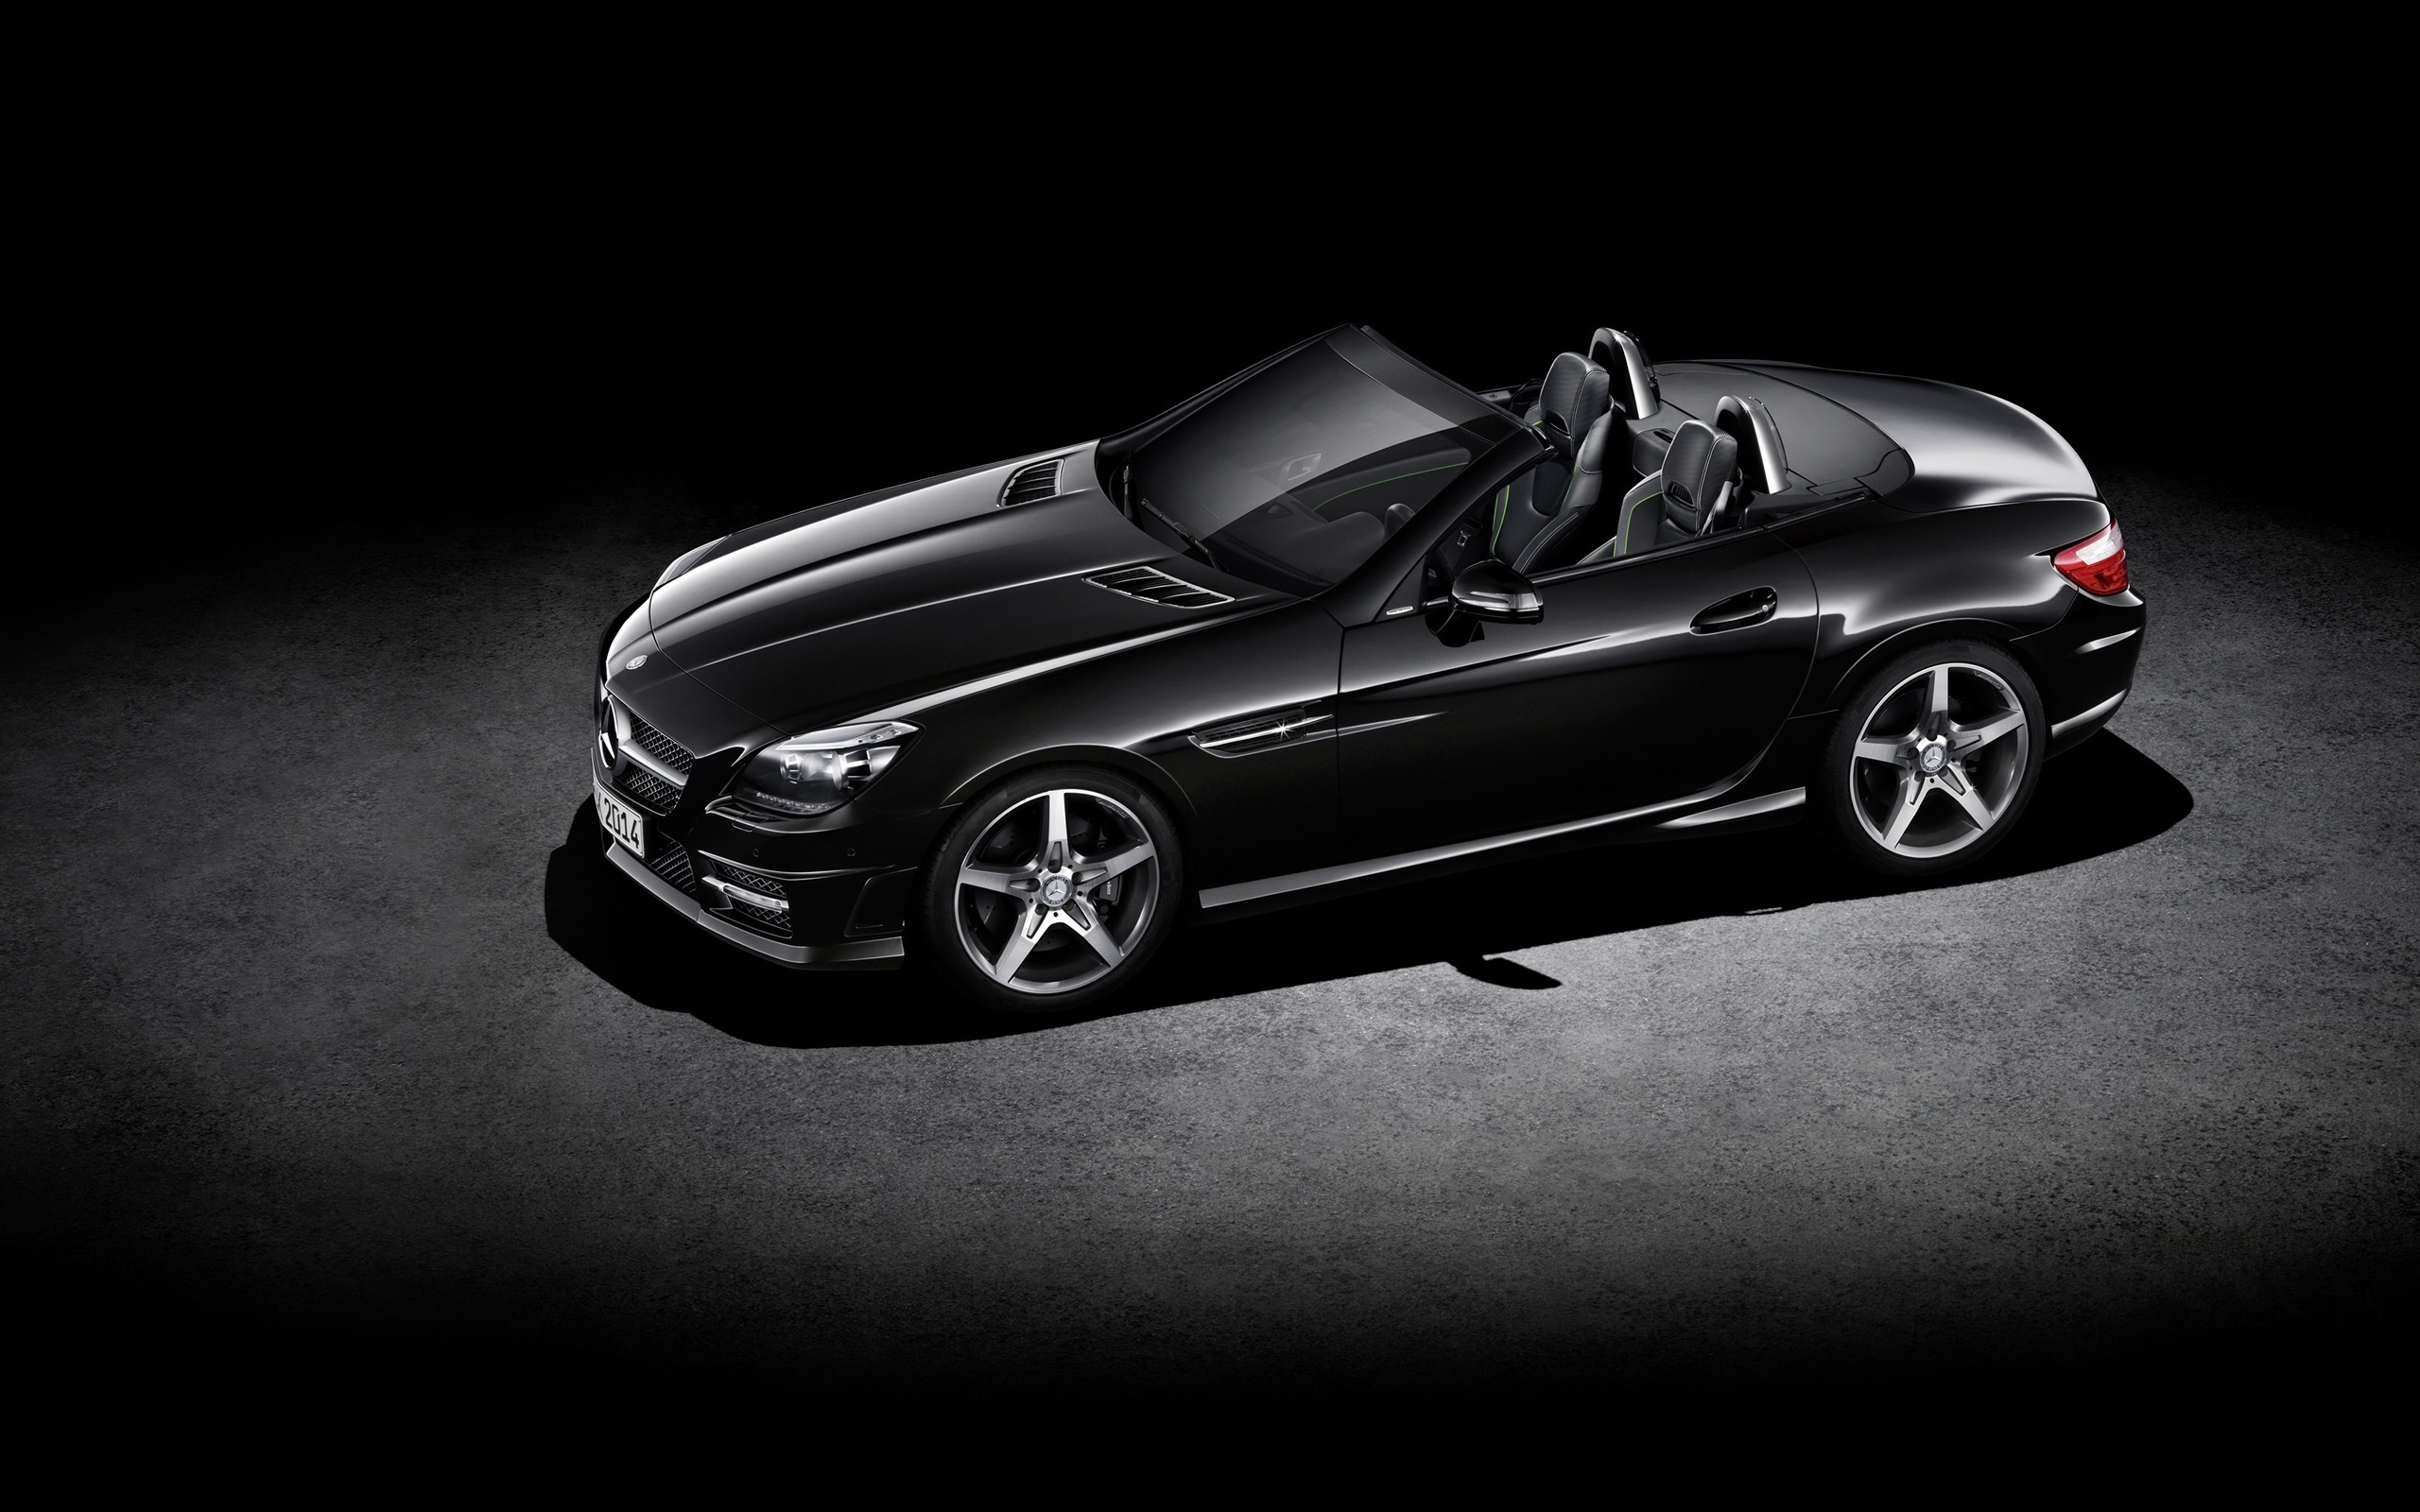 2014 Mercedes Benz SLK CarbonLOOK Edition Wallpaper | HD Car ...